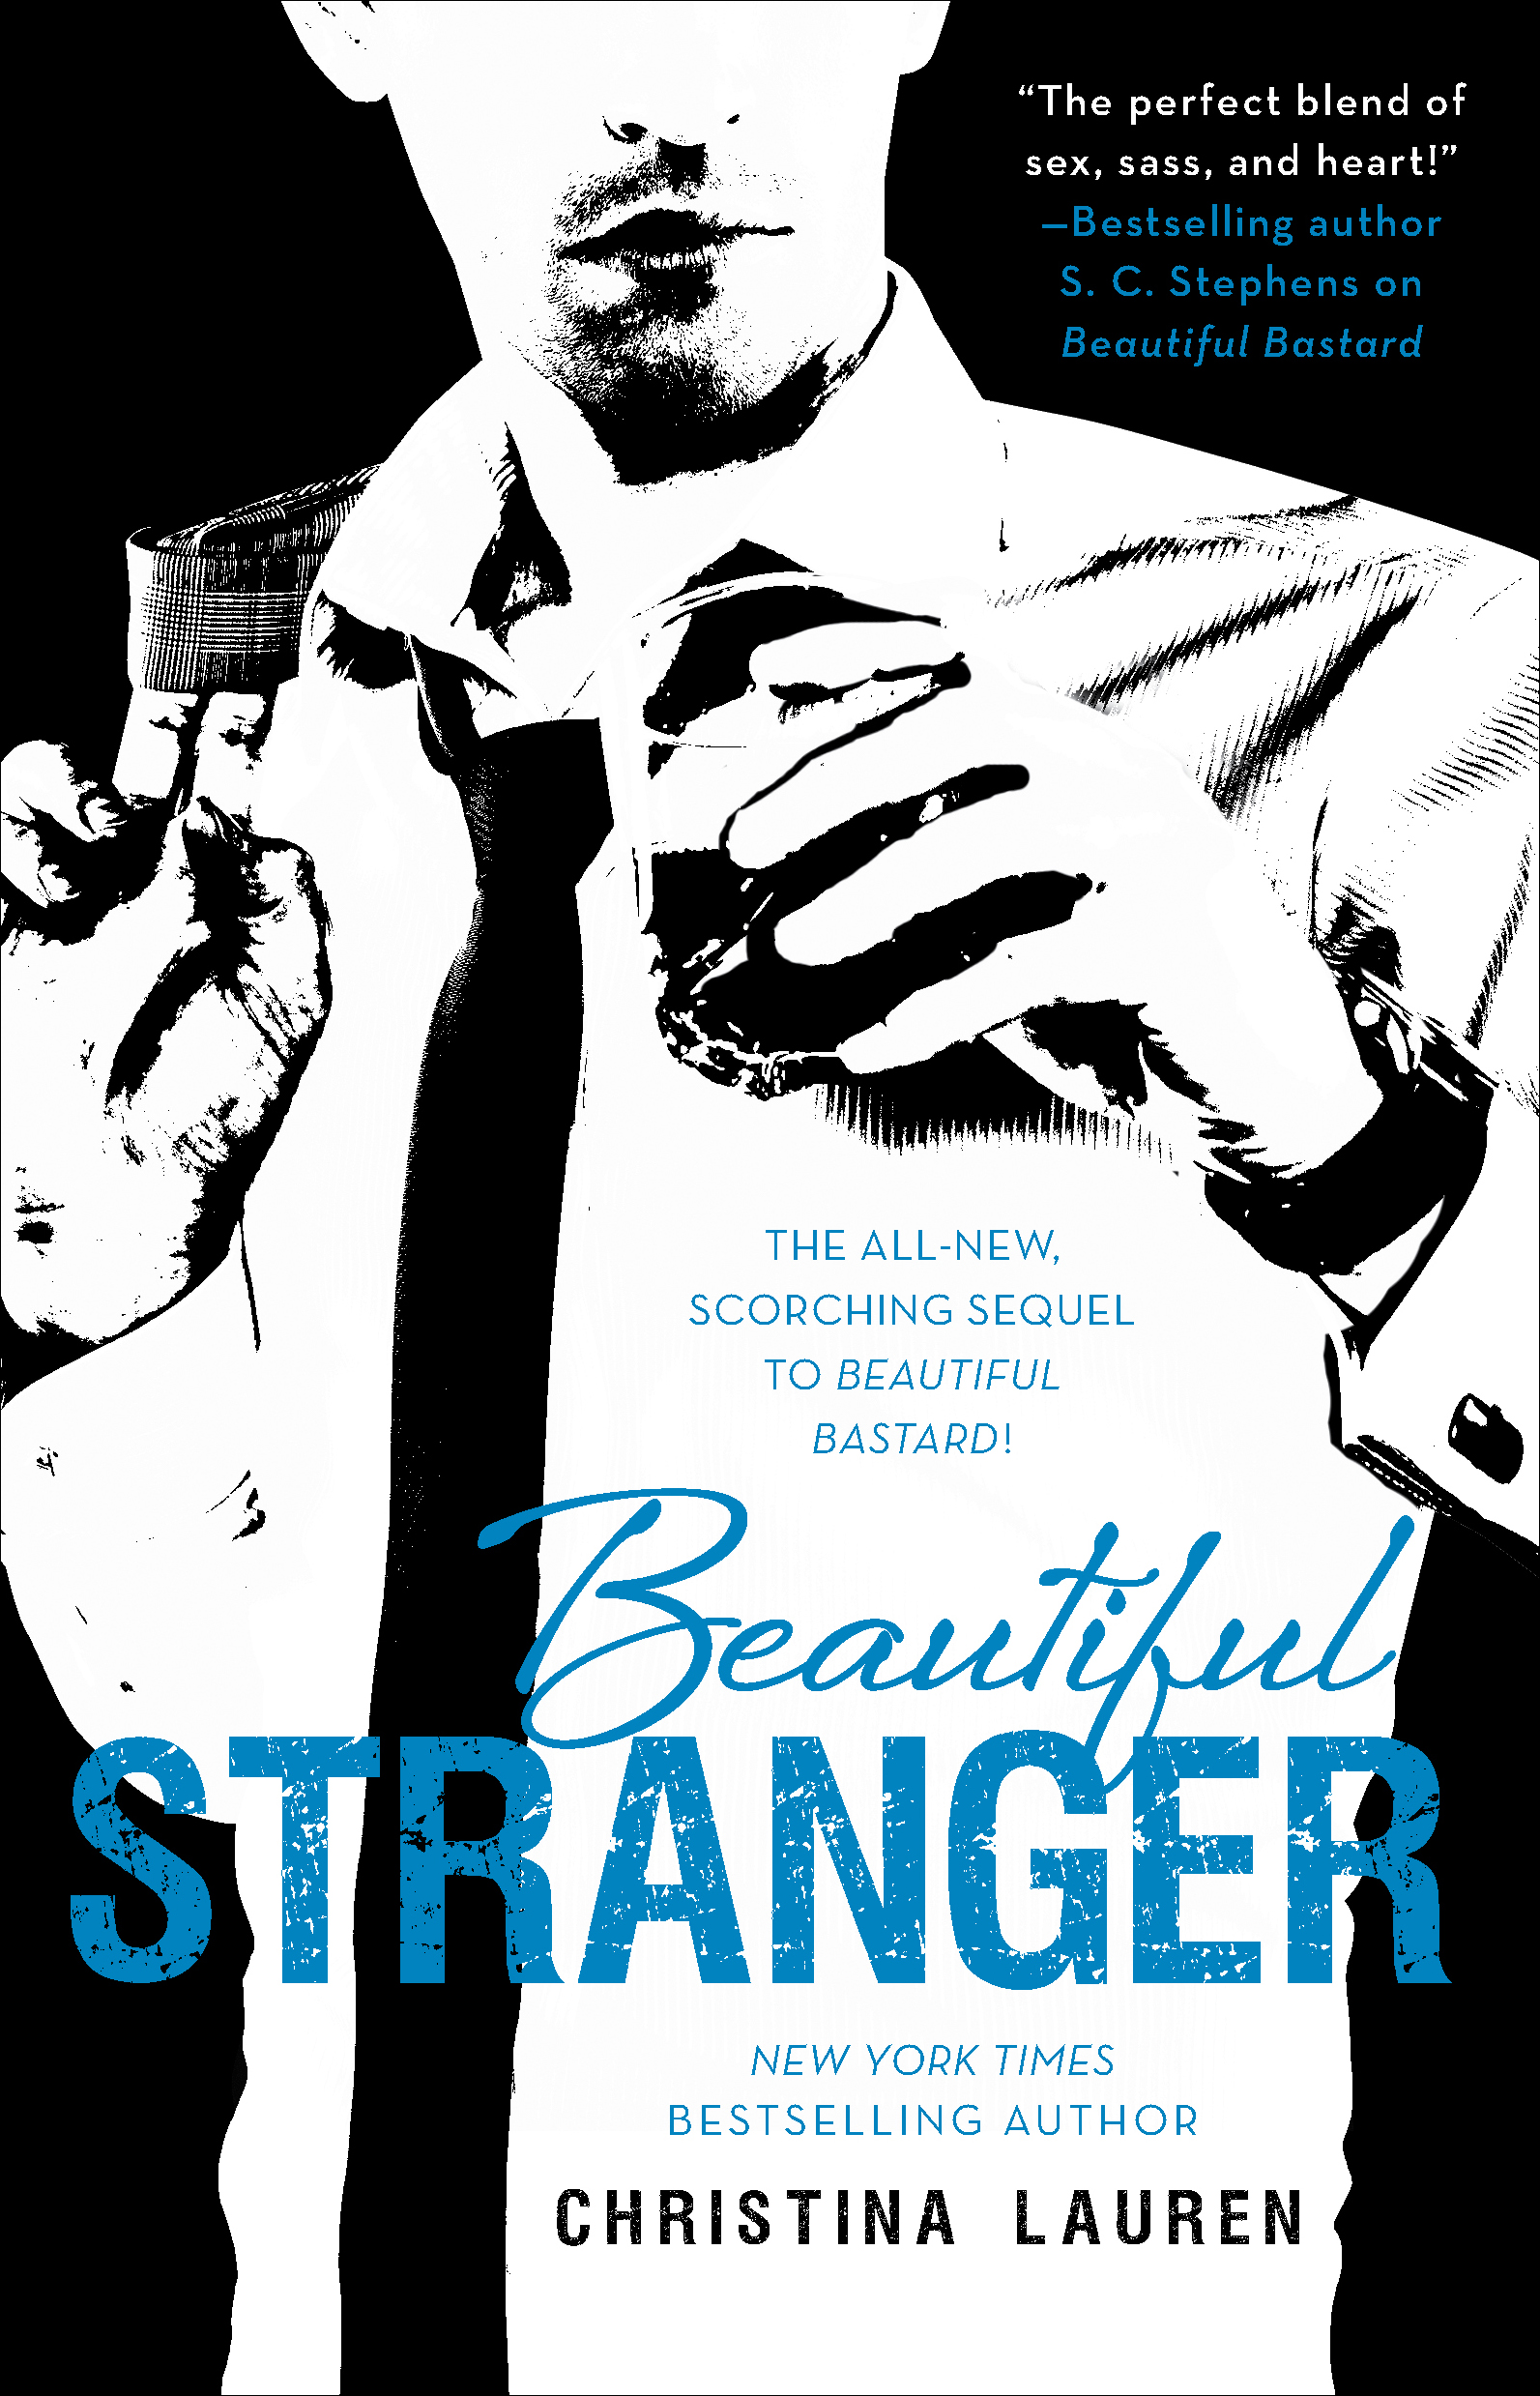 Beautiful stranger special signed edition 9781476797229 hr